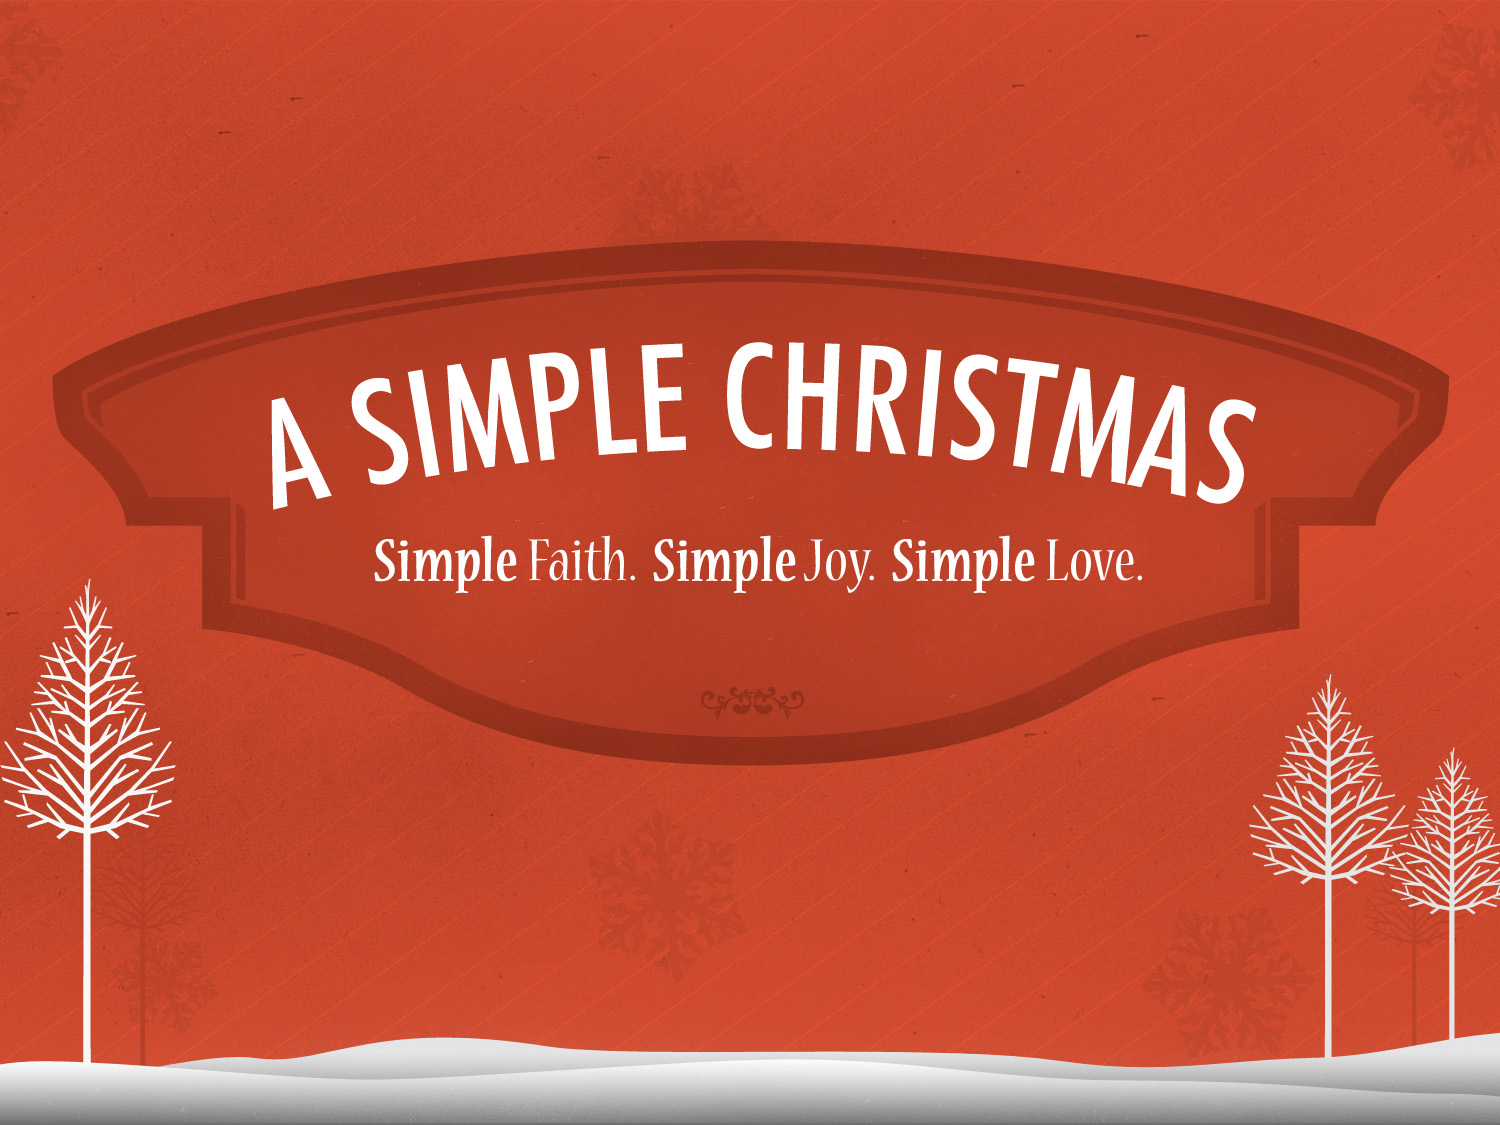 A Simple Christmas: Thankfulness